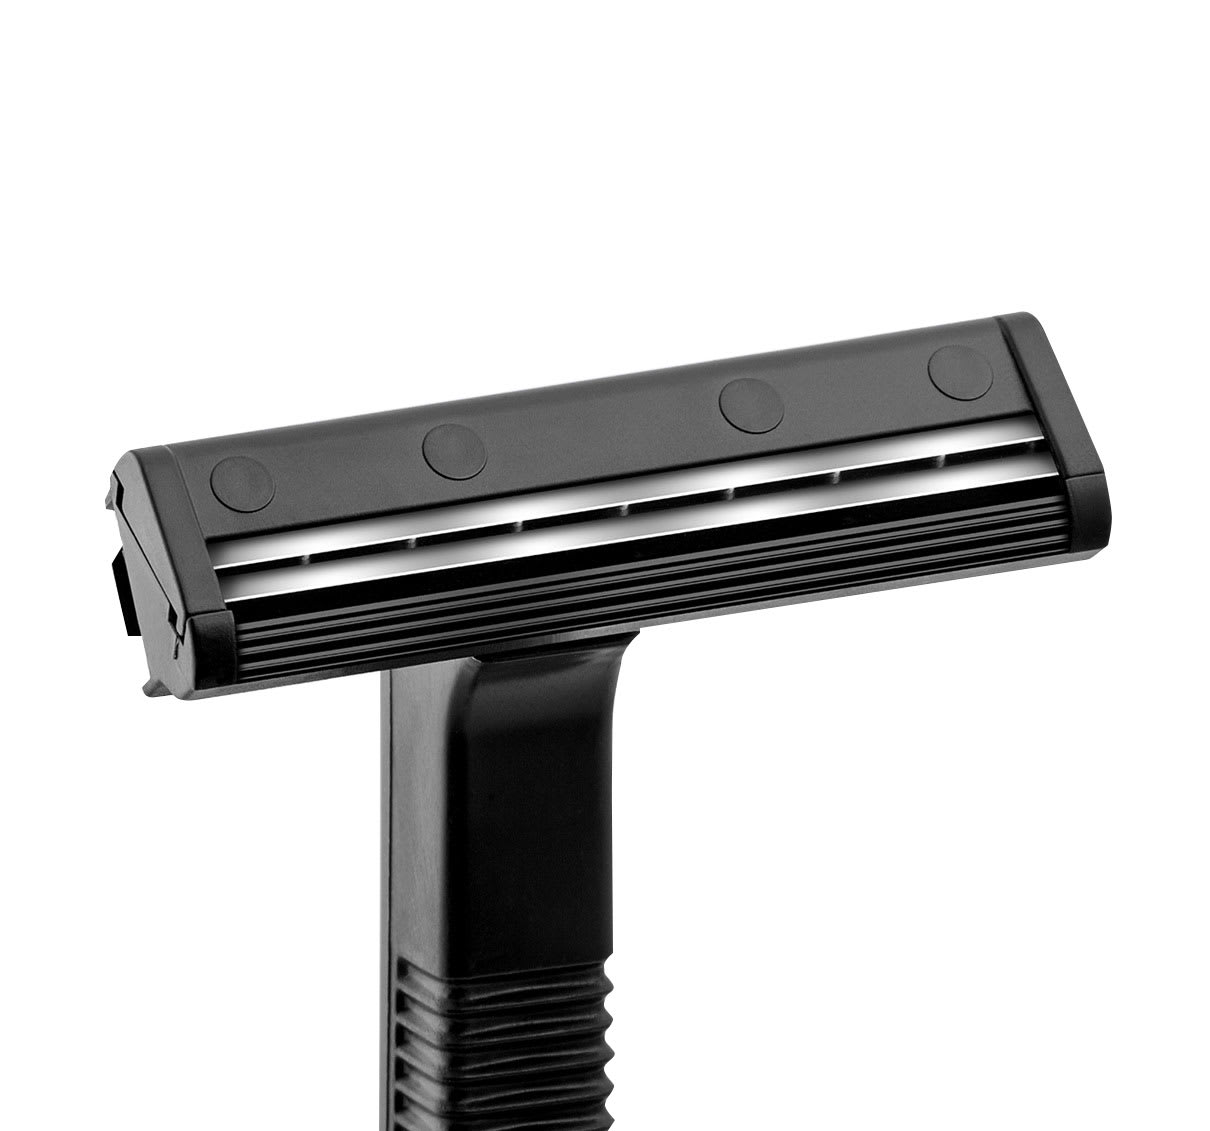 Presto Disposable Razor